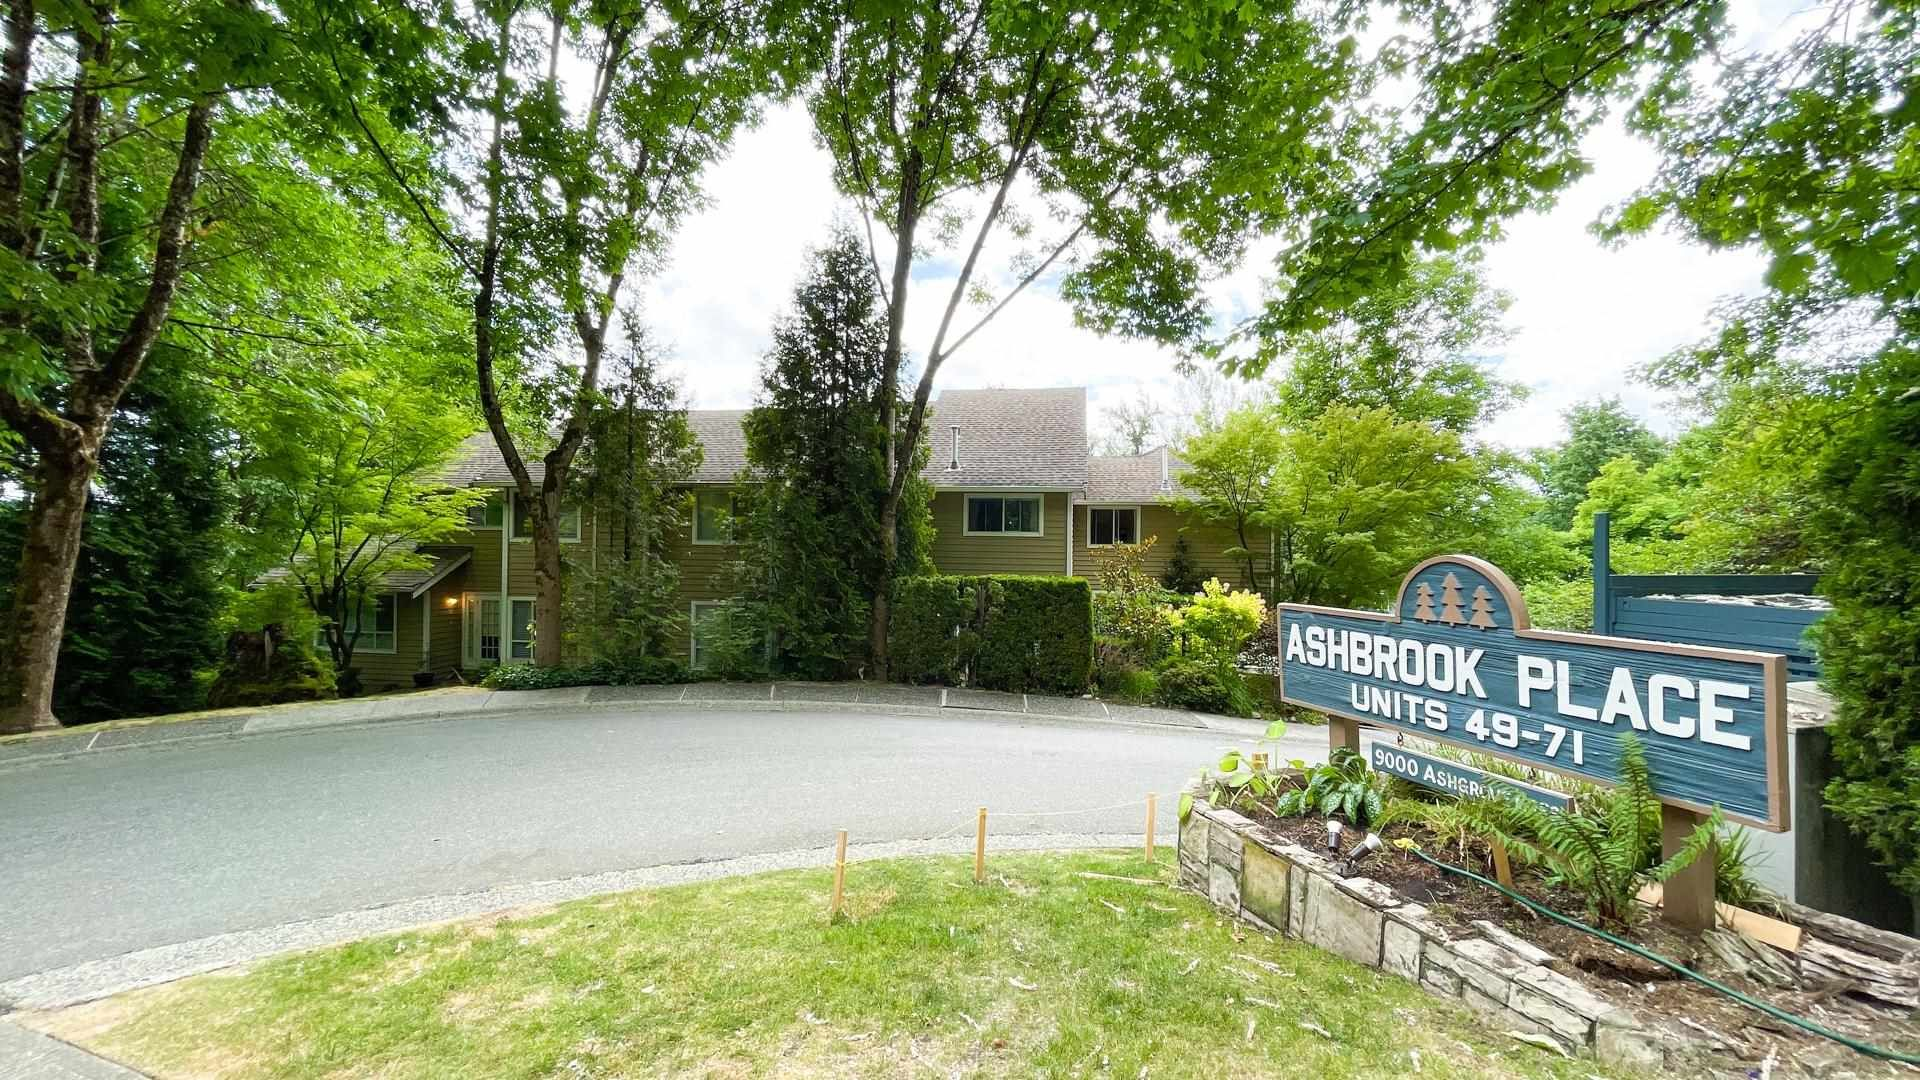 Photo 27: Photos: 66 9000 ASH GROVE CRESCENT in Burnaby: Forest Hills BN Townhouse for sale (Burnaby North)  : MLS®# R2603744